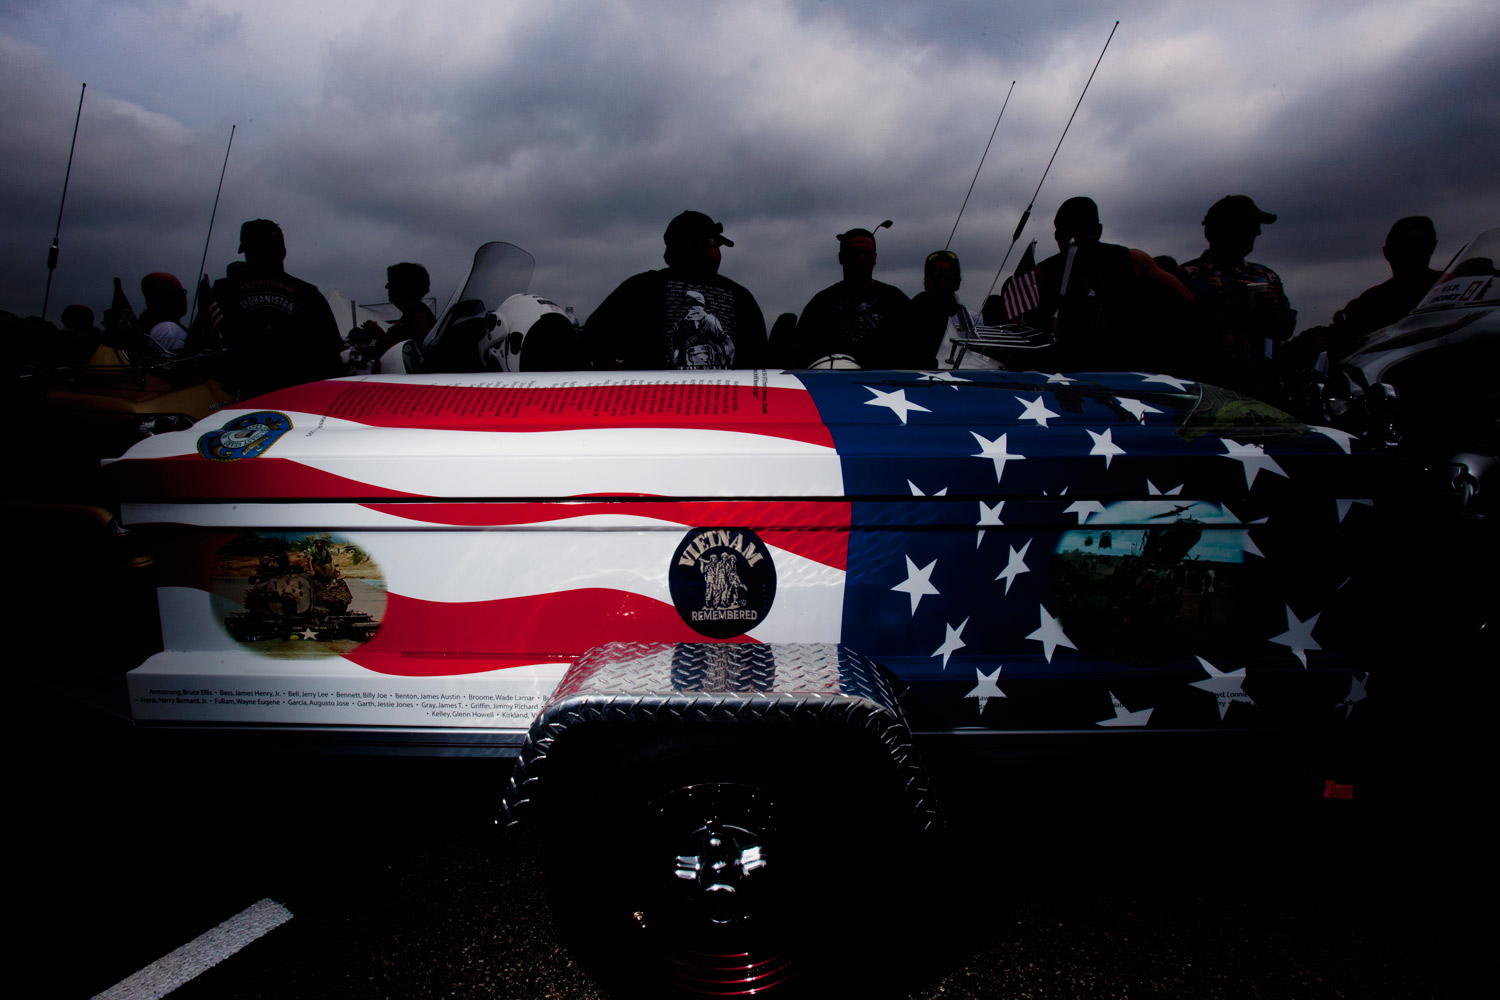 A coffin honoring soldiers who died in the Vietnam War at the start of the Rolling Thunder rally in Washington, DC. Sunday, May 29, 2011.